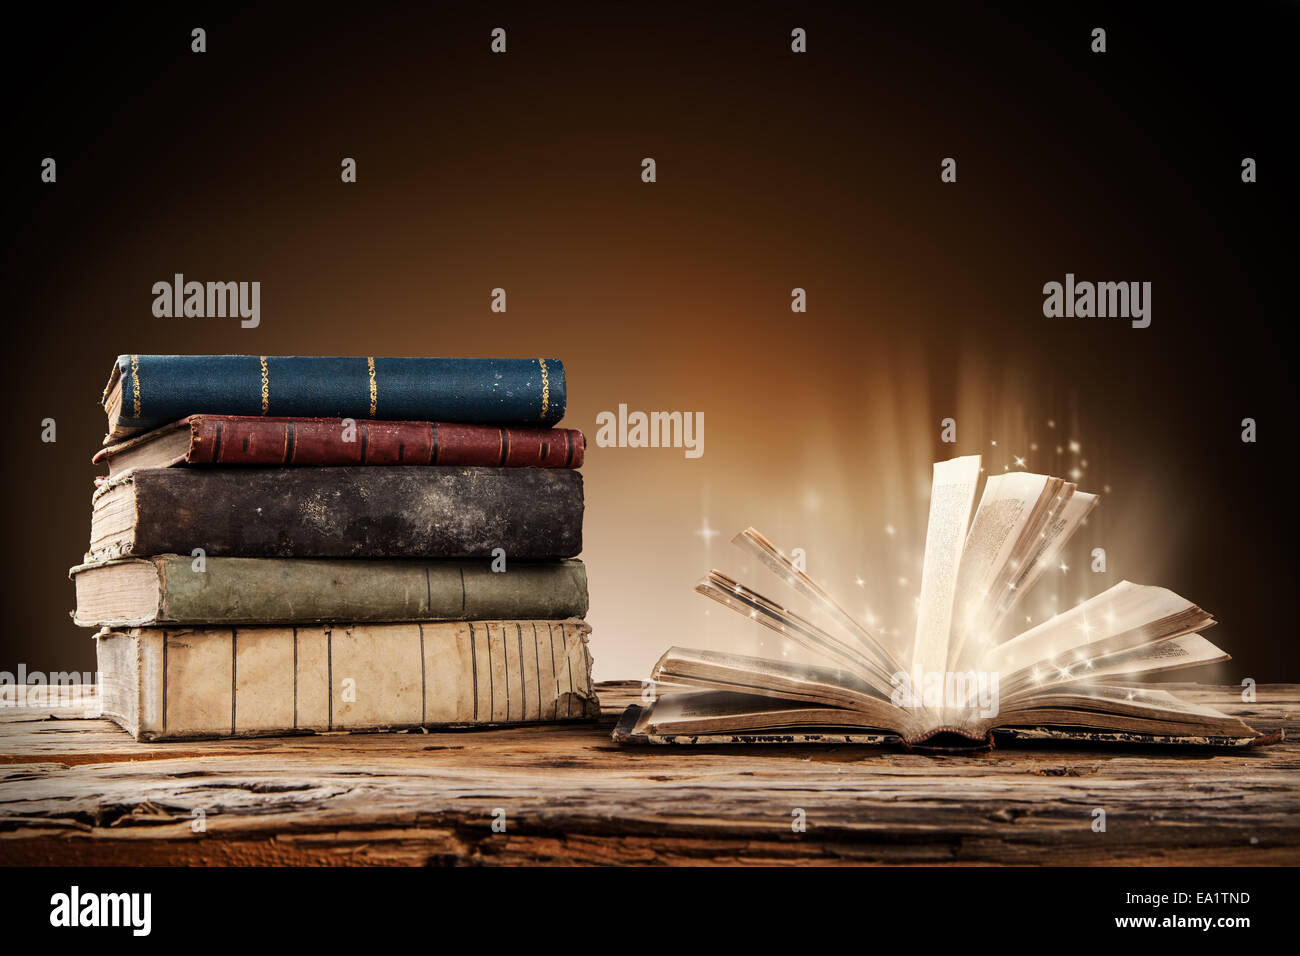 Old books on wooden planks with blur shimmer background - Stock Image